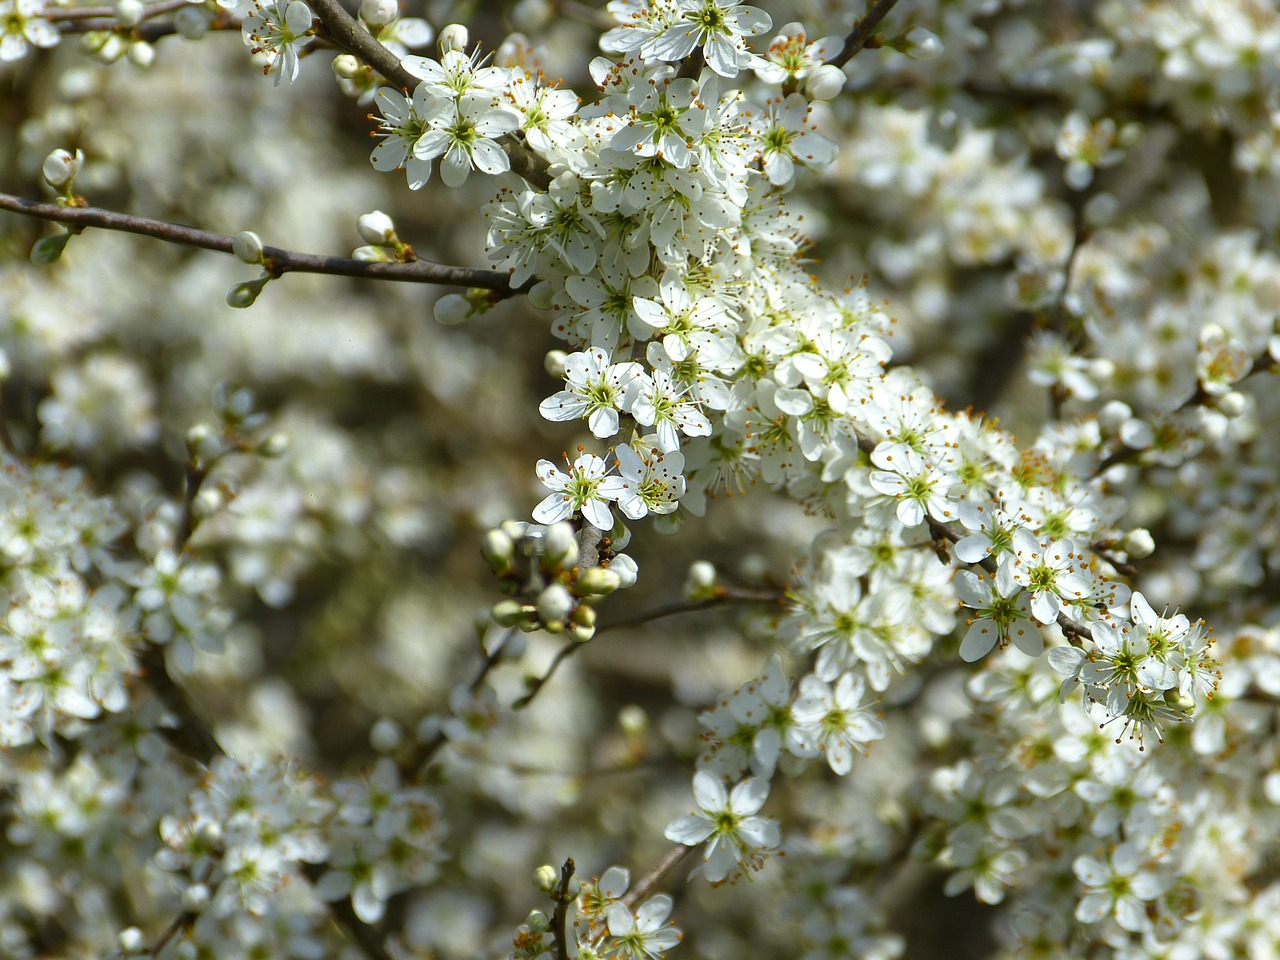 schlehe,blackthorn,prunus spinosa,schlehendorn,heckendorn,hedge,steinobstgewaechs,white,bloom,flowers,fill,splendor,white splendour,spring,free pictures, free photos, free images, royalty free, free illustrations, public domain